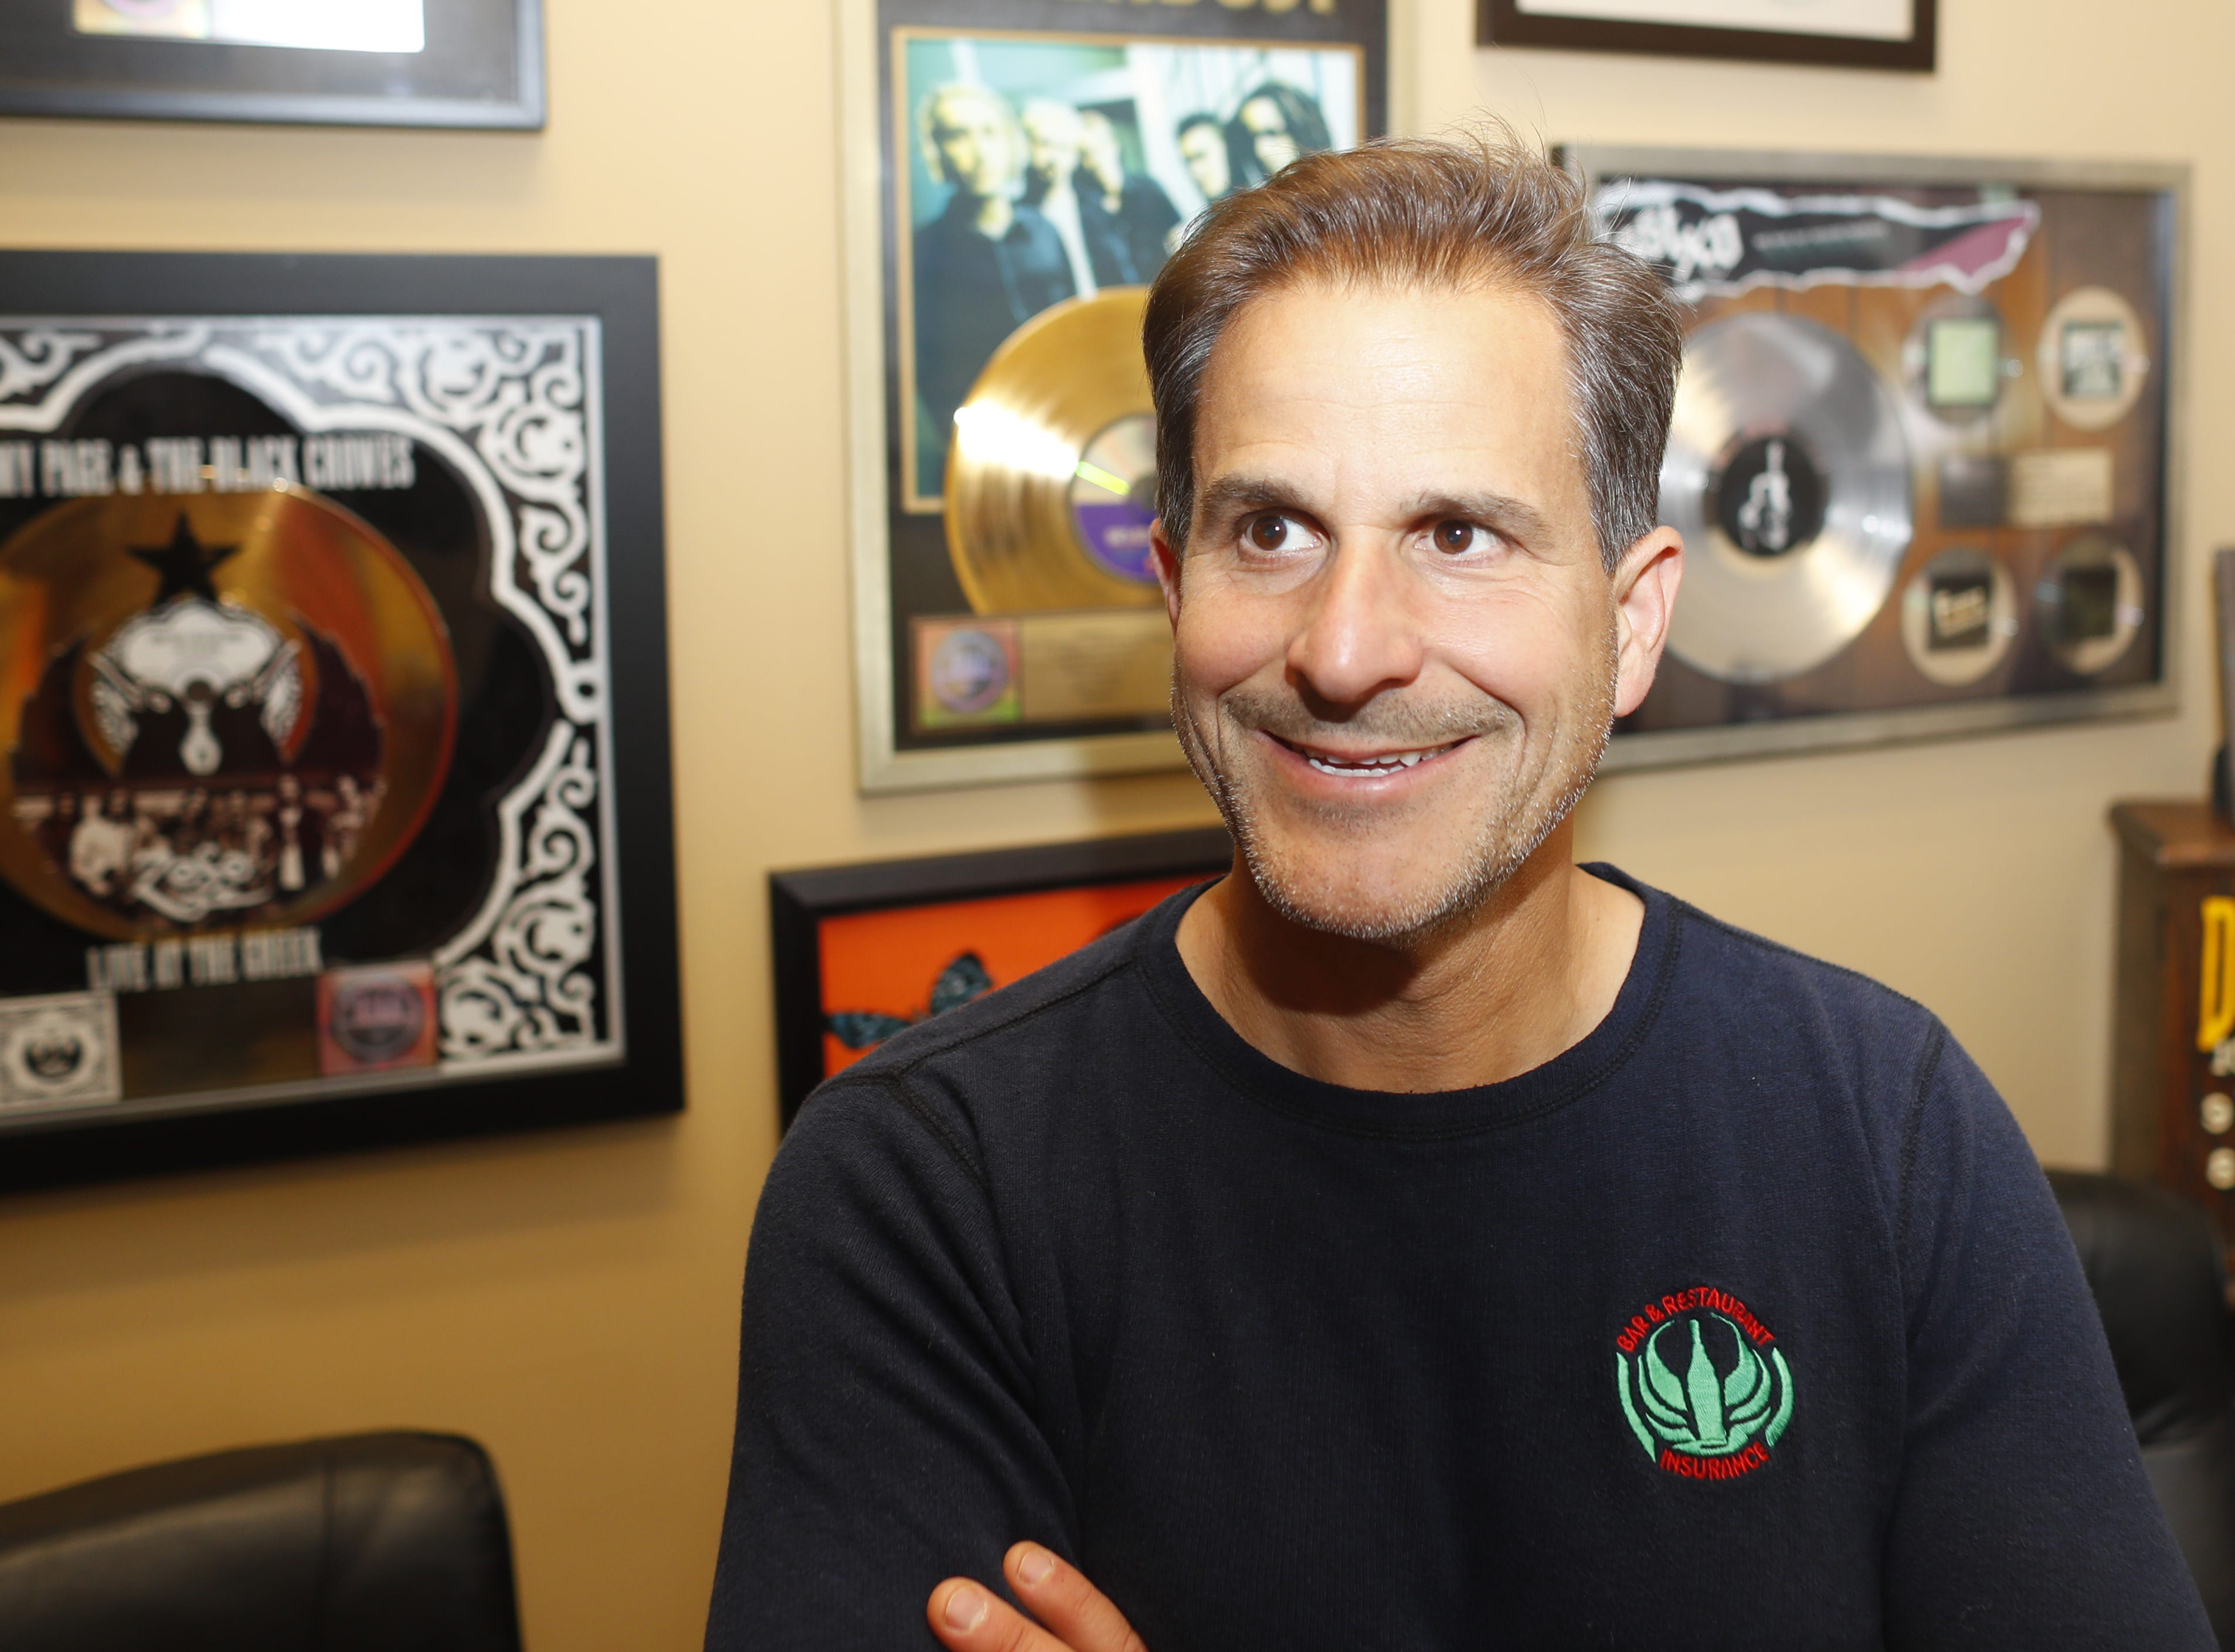 """David DeLorenzo's office walls at the Bar and Restaurant Insurance, The Ambassador Group hold gold and platinum record reminders of his past career. """"When the industry changed, it wasn't the glamorous or fun job it had been,"""" he says."""